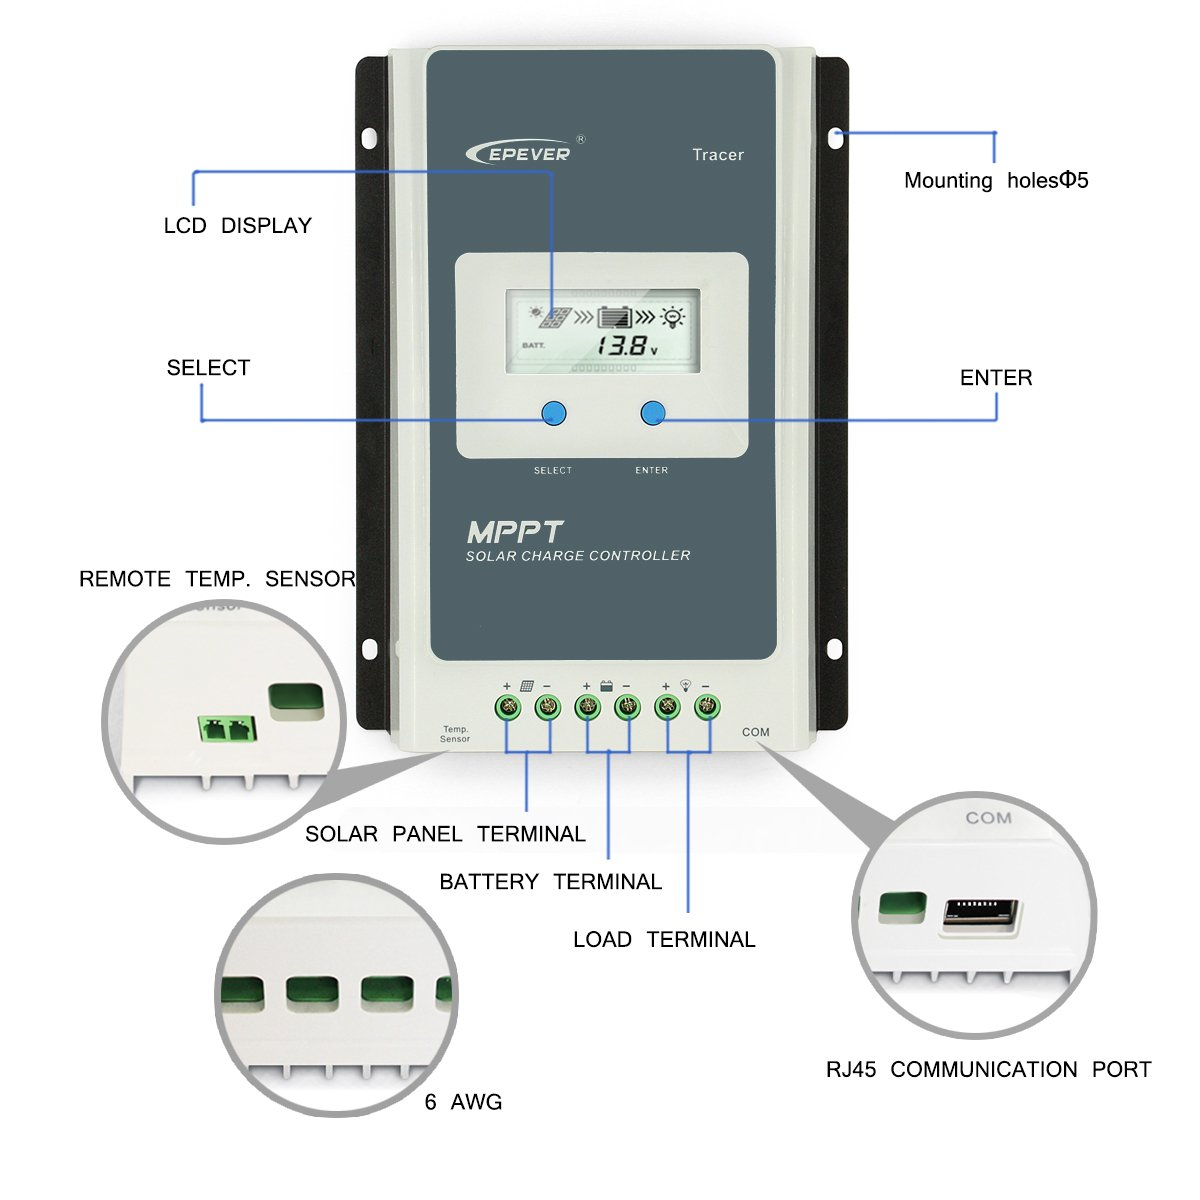 Epever 40a Mppt Solar Charge Controller Tracer A 4210a Battery Charger Circuit Besides Remote Meter Mt 50 With Lcd Display For Charging Garden